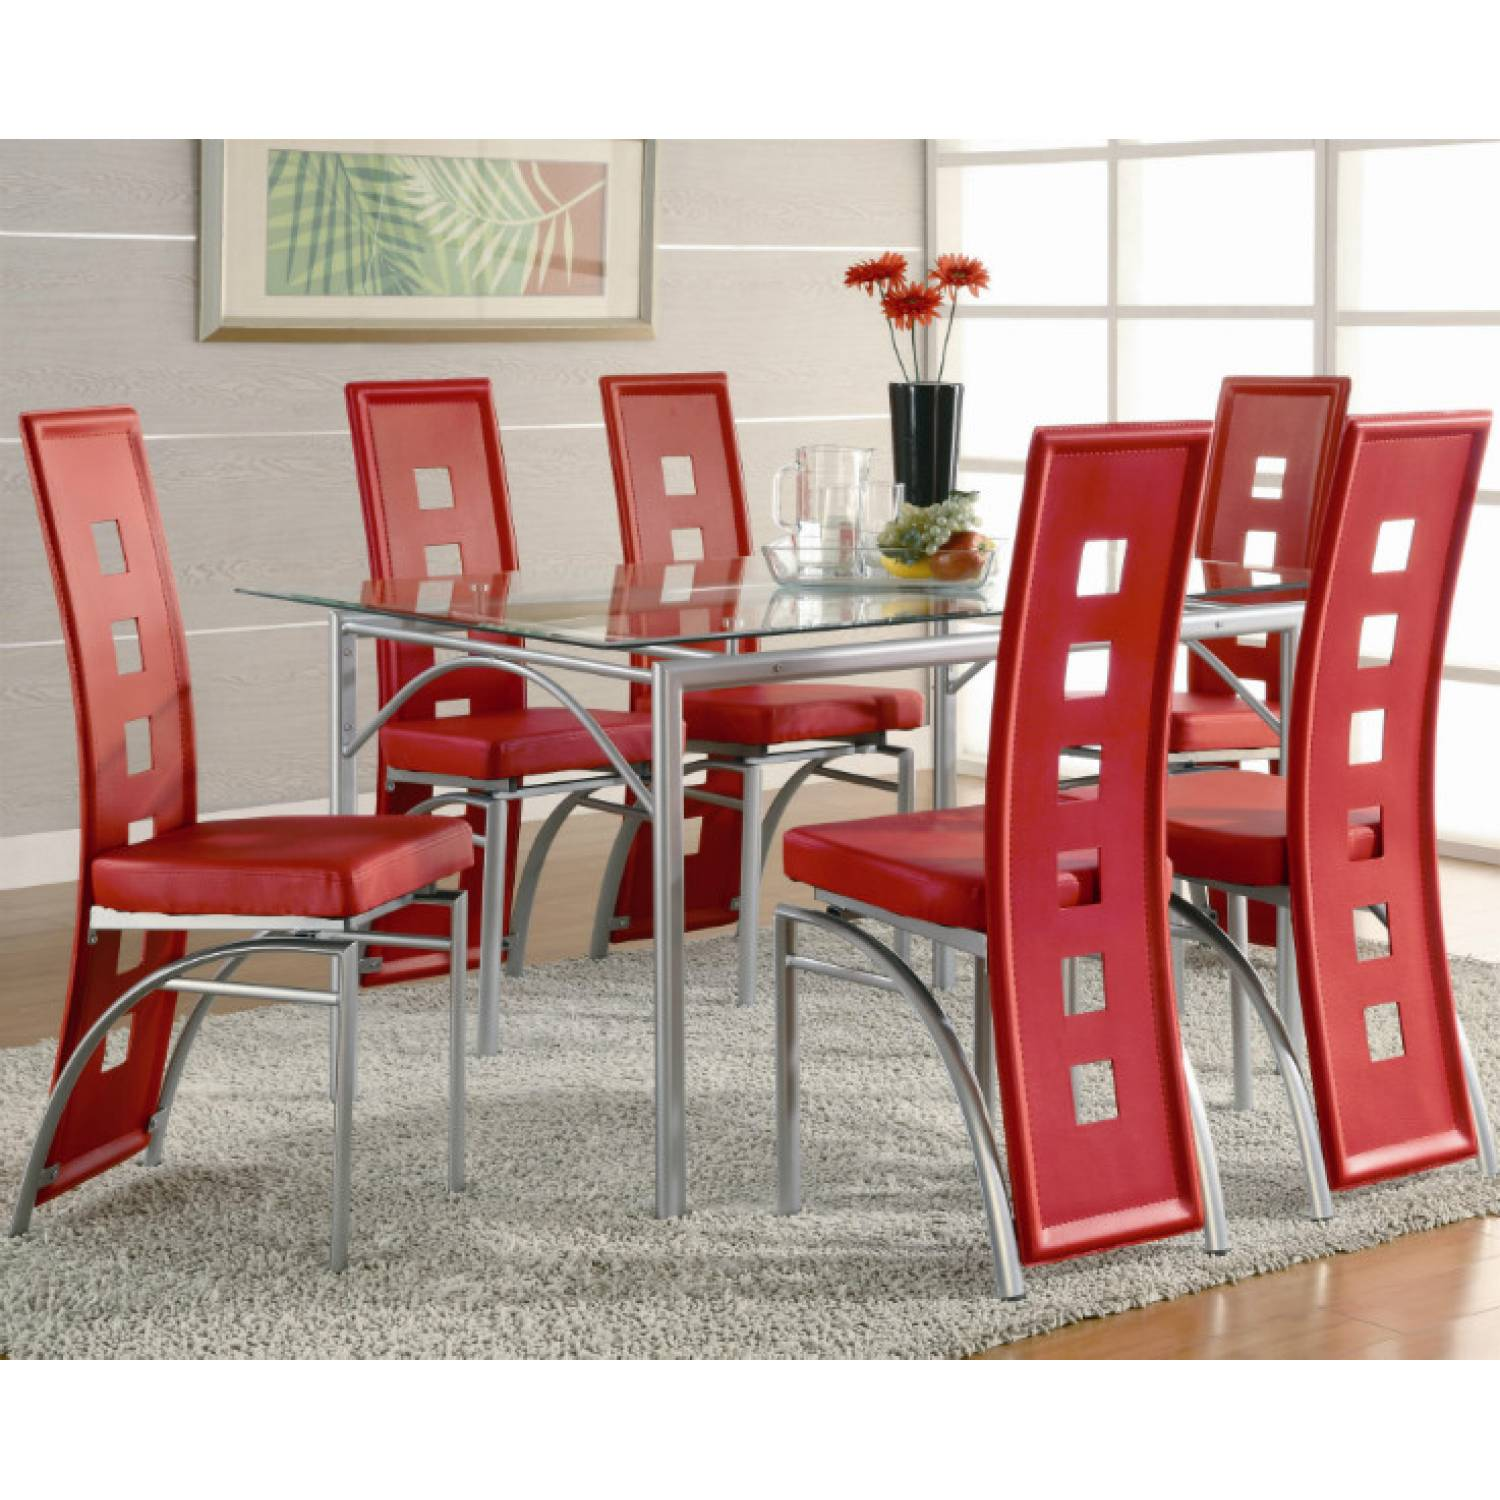 Red Dining Room Furniture: Los Feliz Contemporary Metal Dinner Table And Red